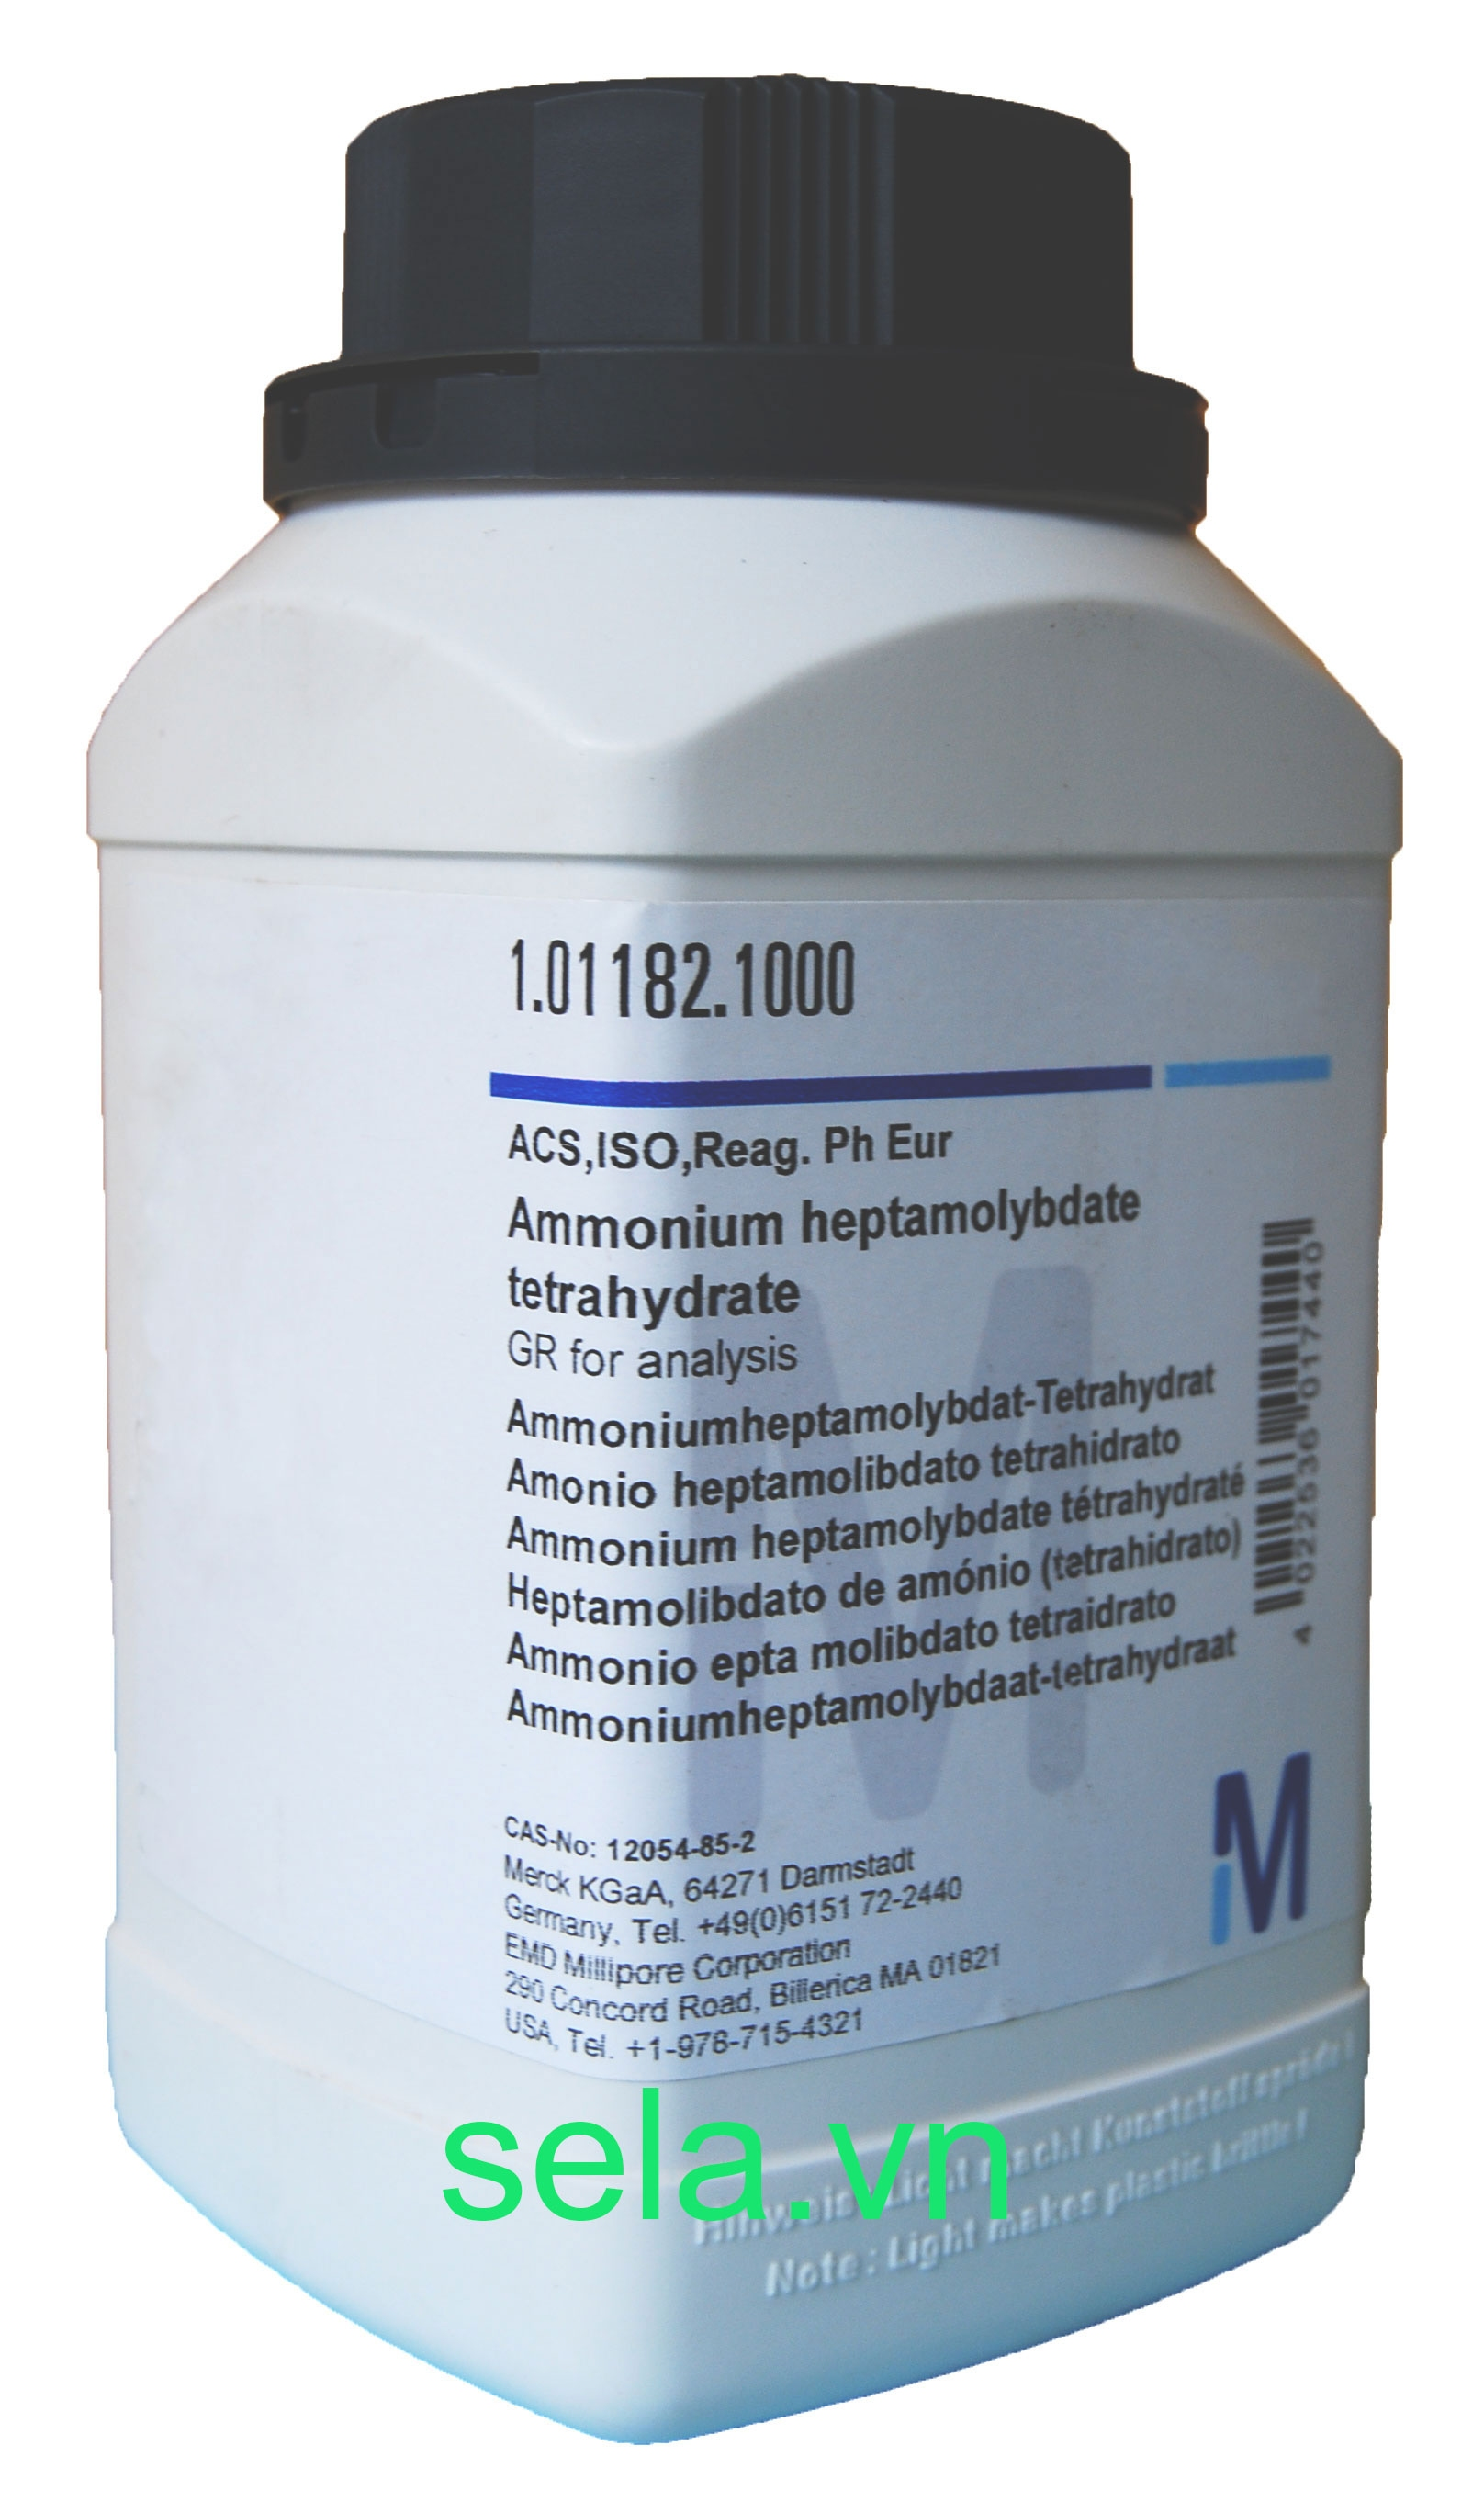 Ammonium heptamolybdate tetrahydrate GR for analysis